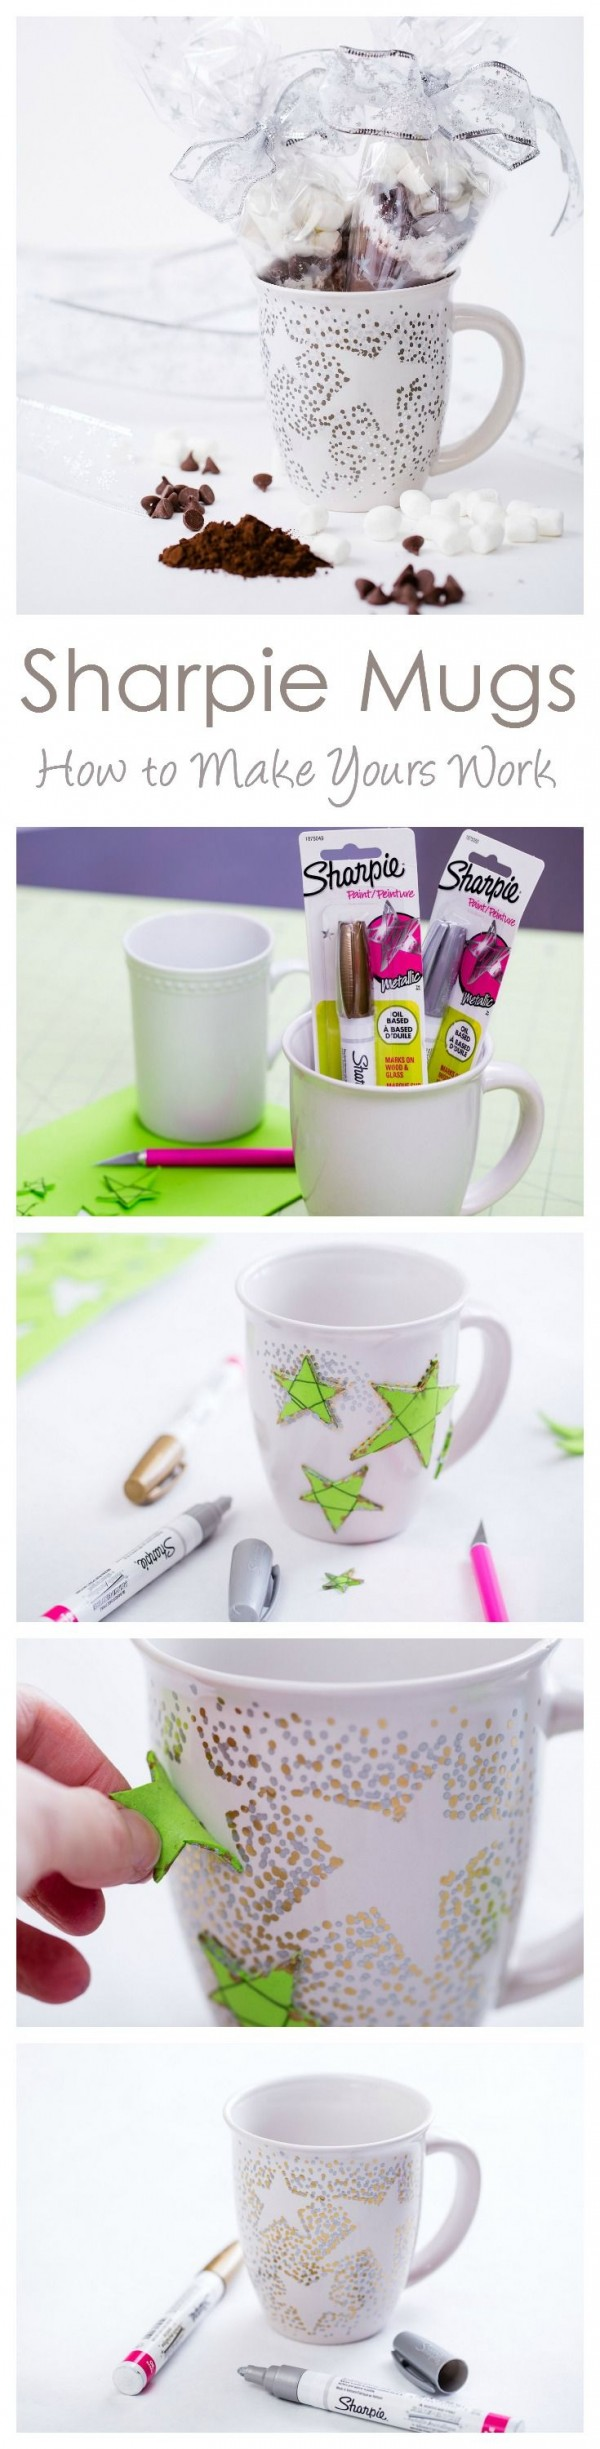 DIY Sharpie Mug15